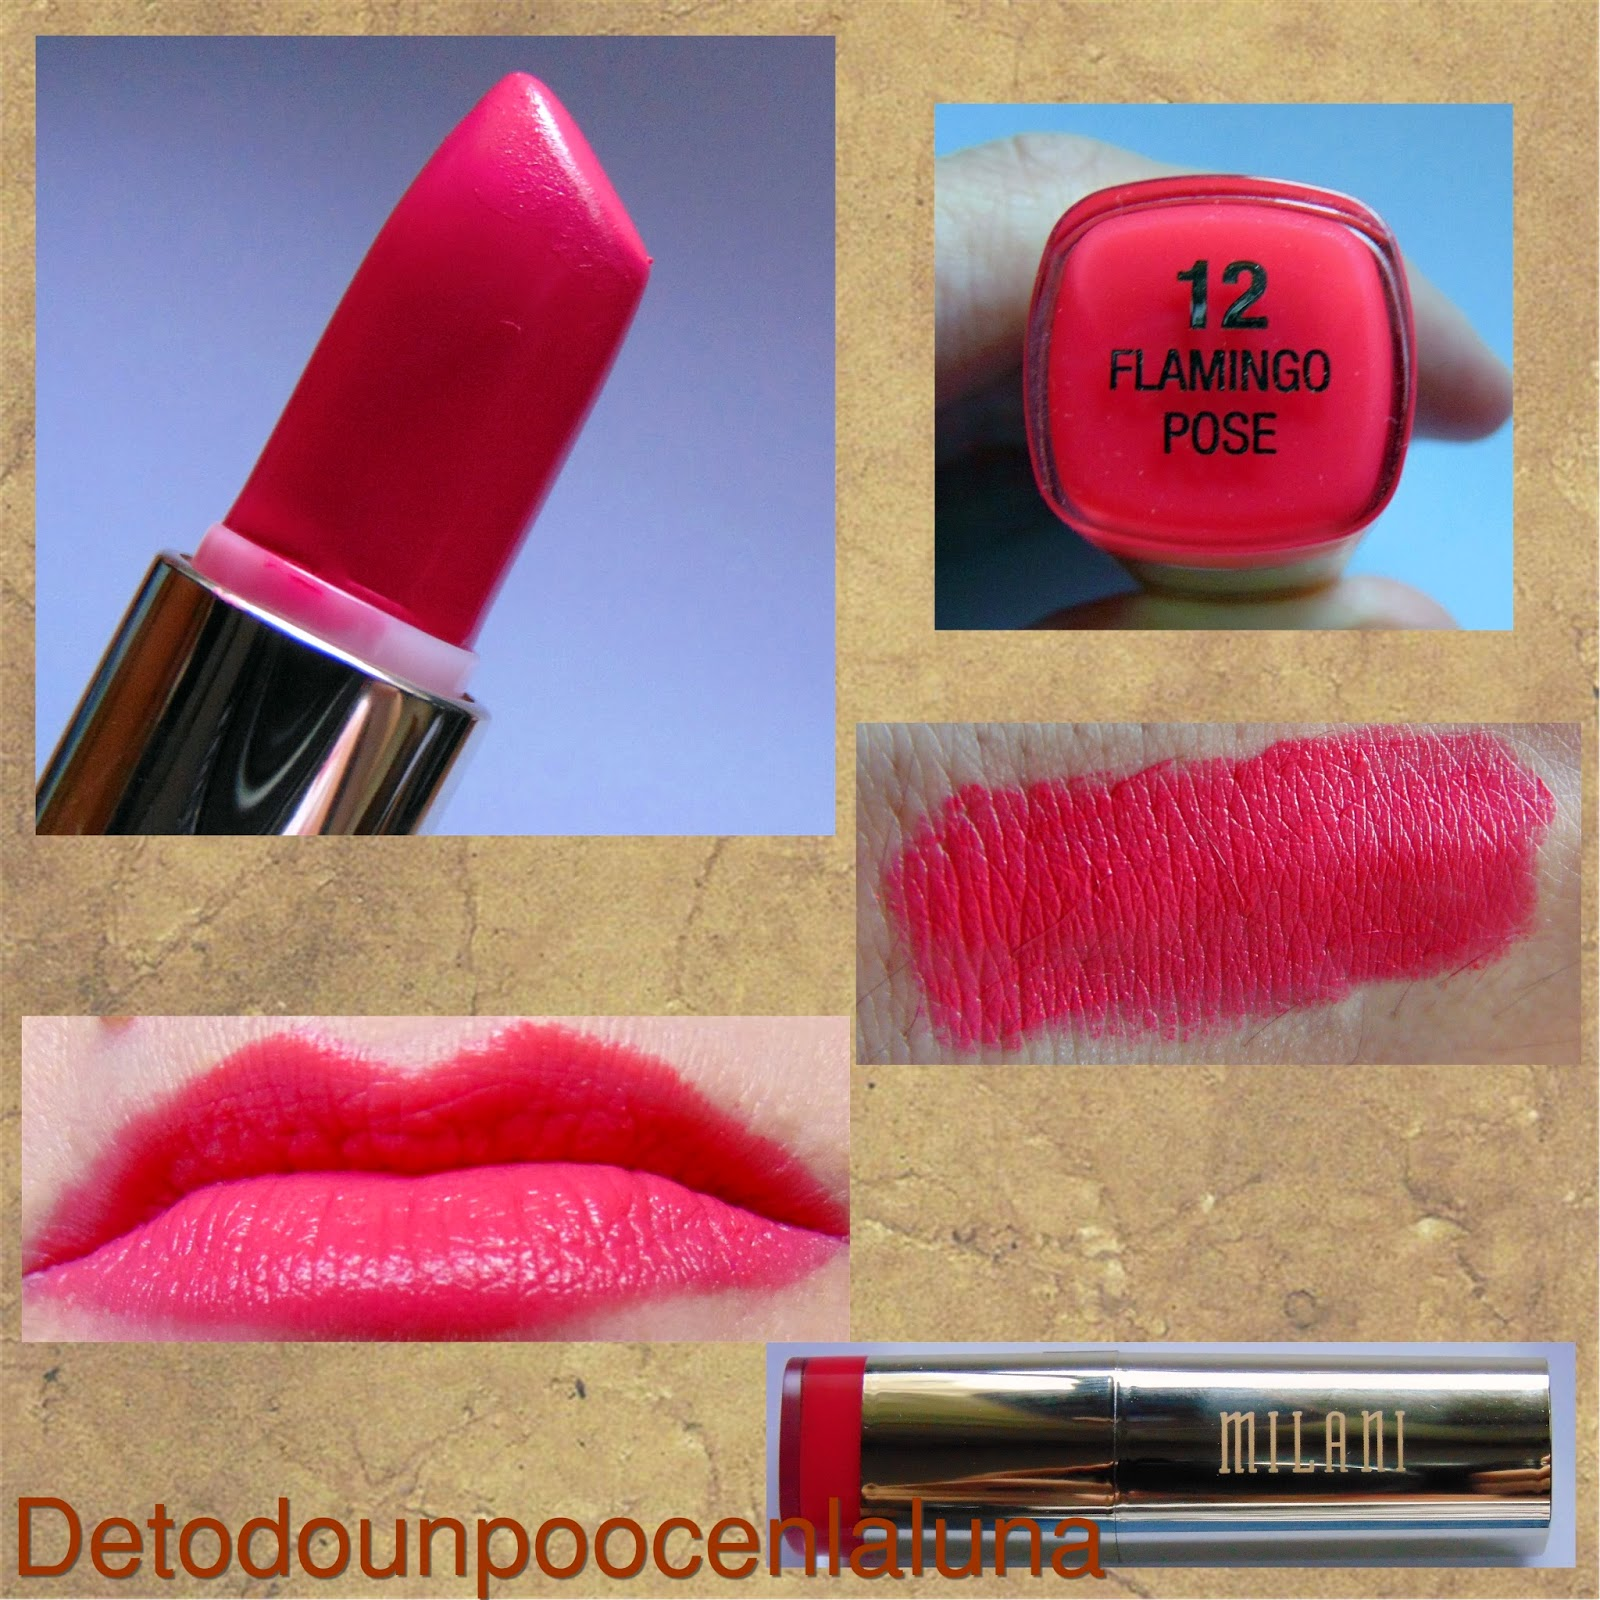 labial flamingo pose milani